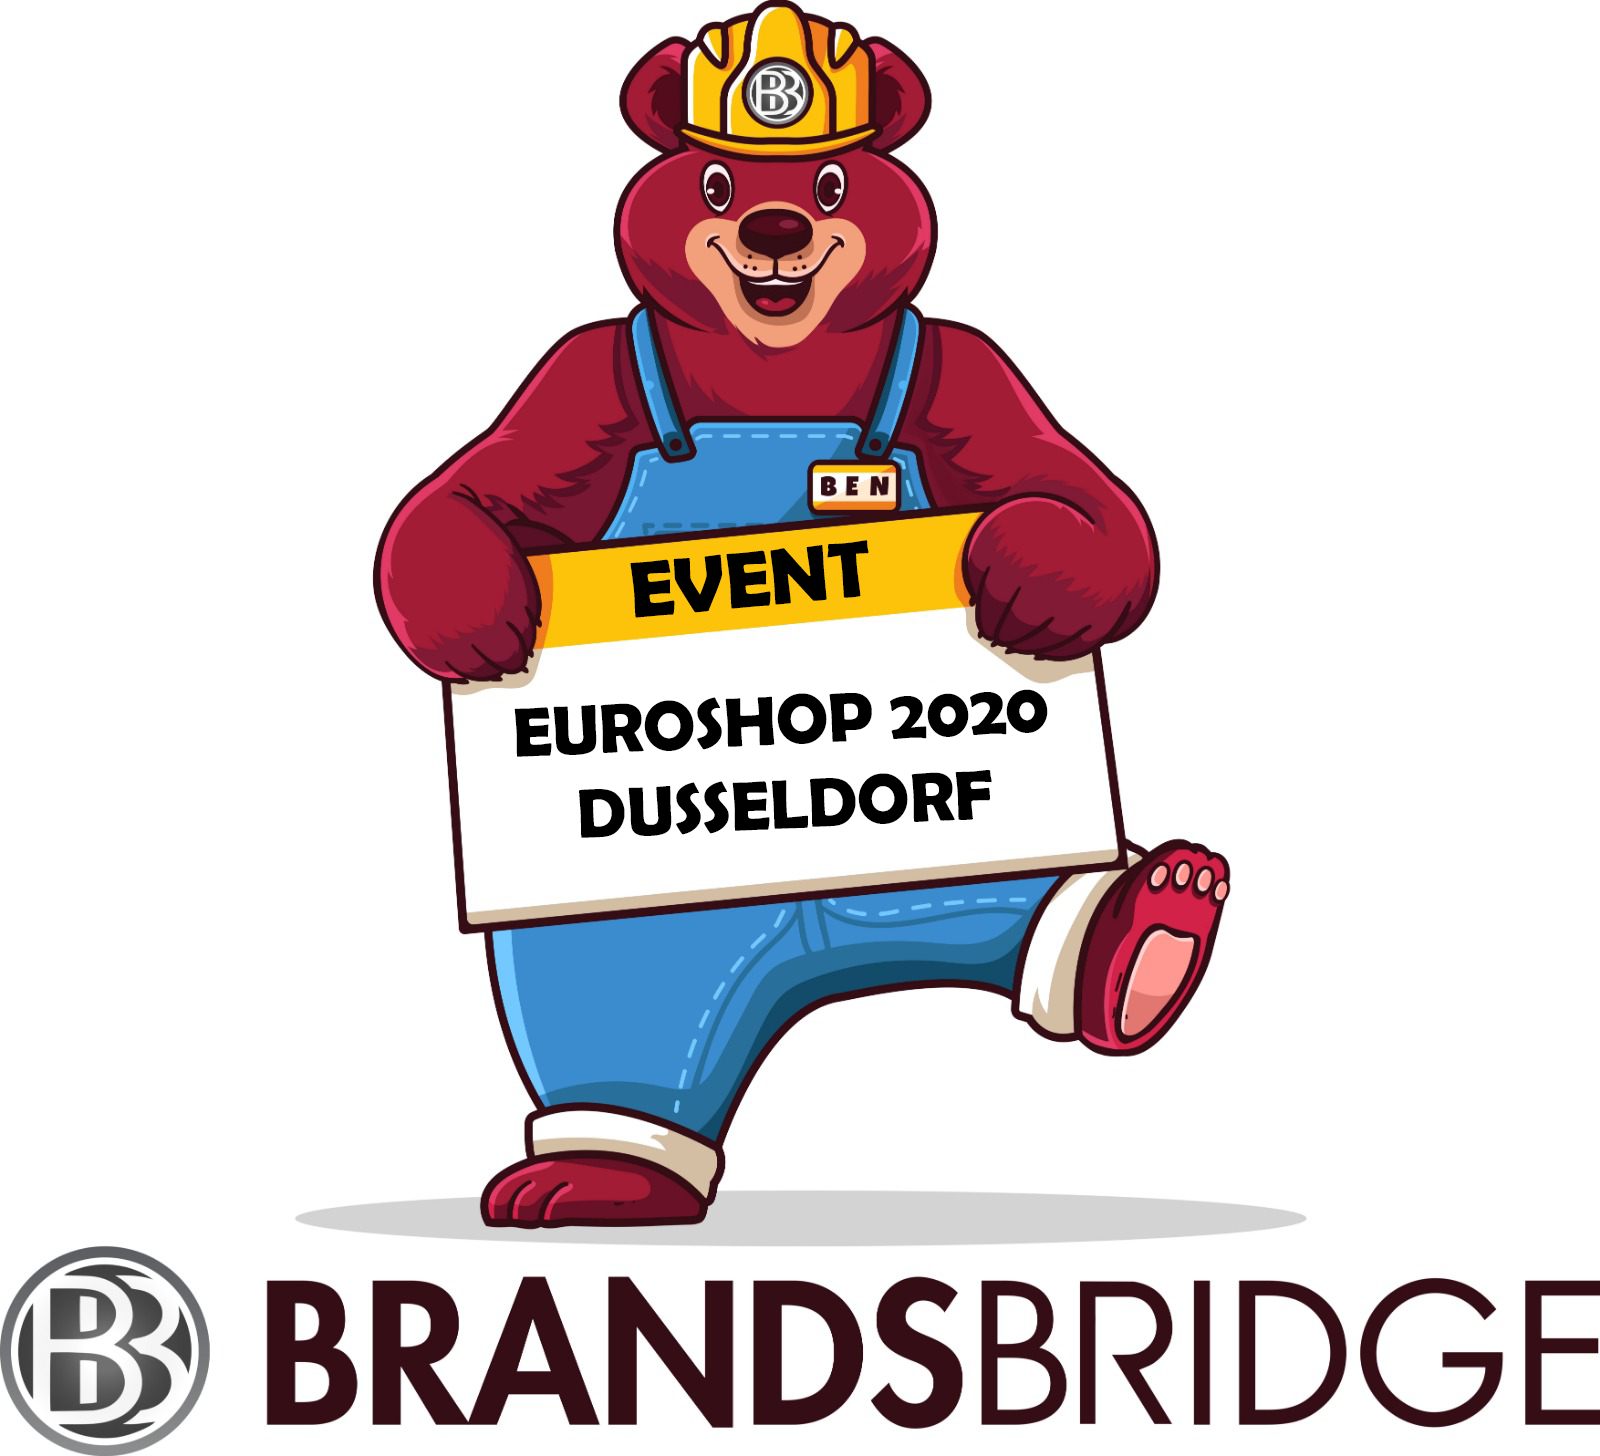 Ben Event Euroshop 2020